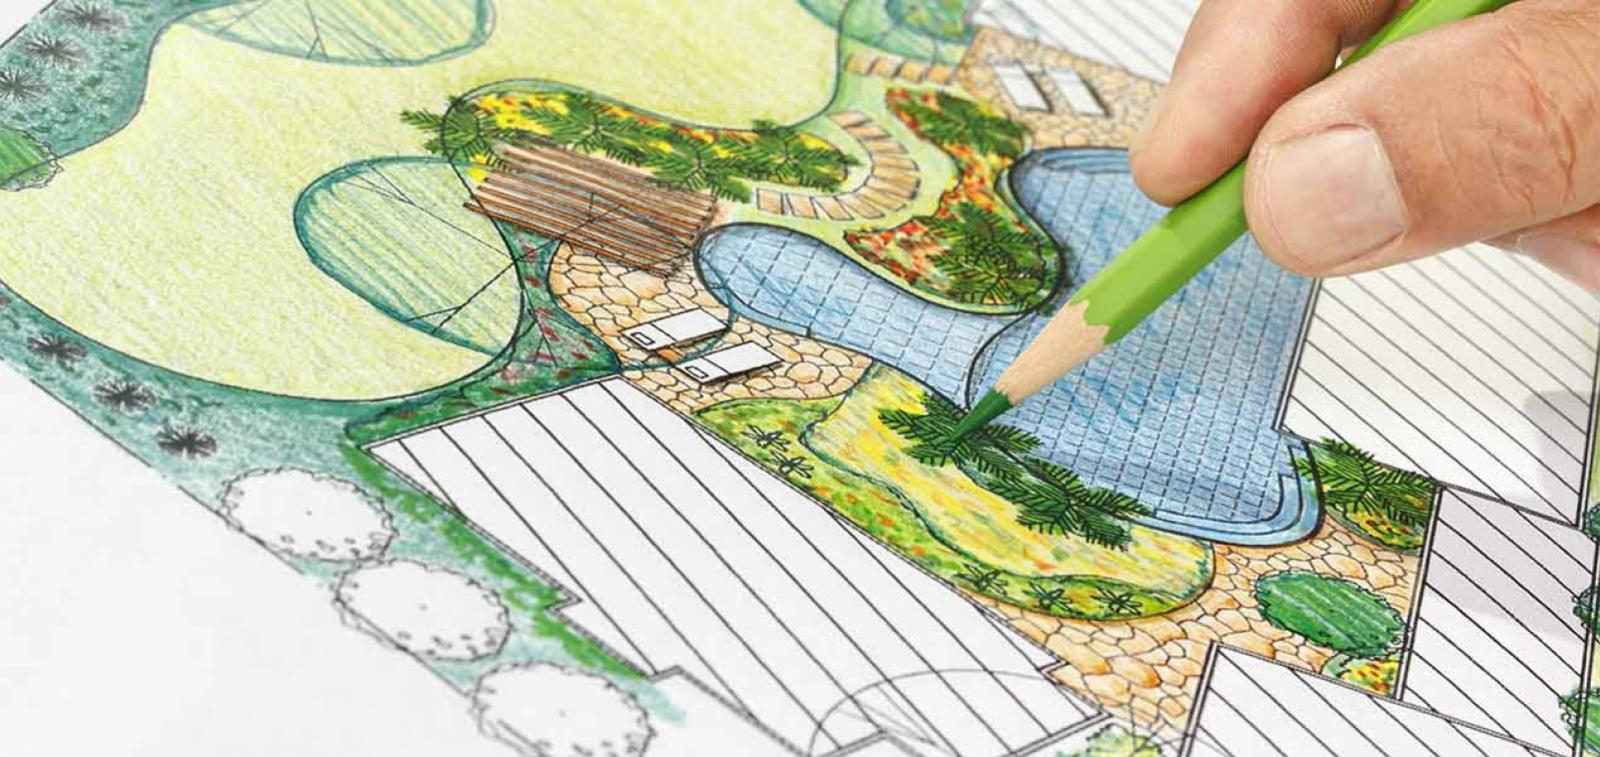 Landscape architecture plan